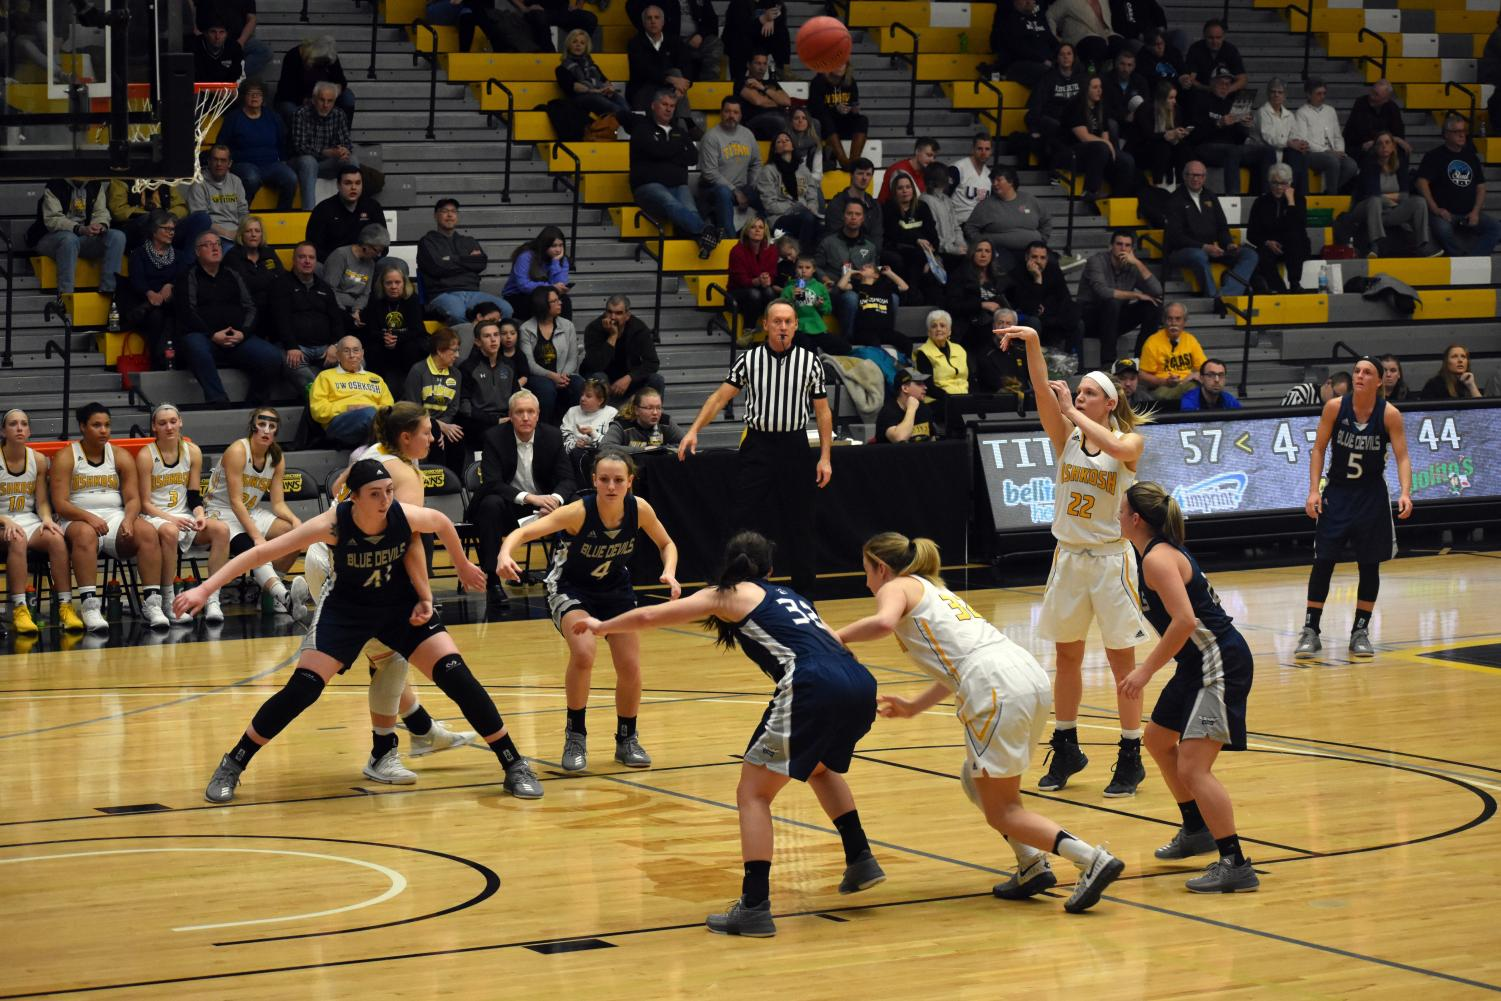 UW Oshkosh junior forward Melanie Schneider releases a free throw as freshman Karsyn Rueth (left) and senior Madeline Staples (No. 32) move off the block to gain position for a potential rebound. In the regular season finale against UW-Stout, Schneider had five points.